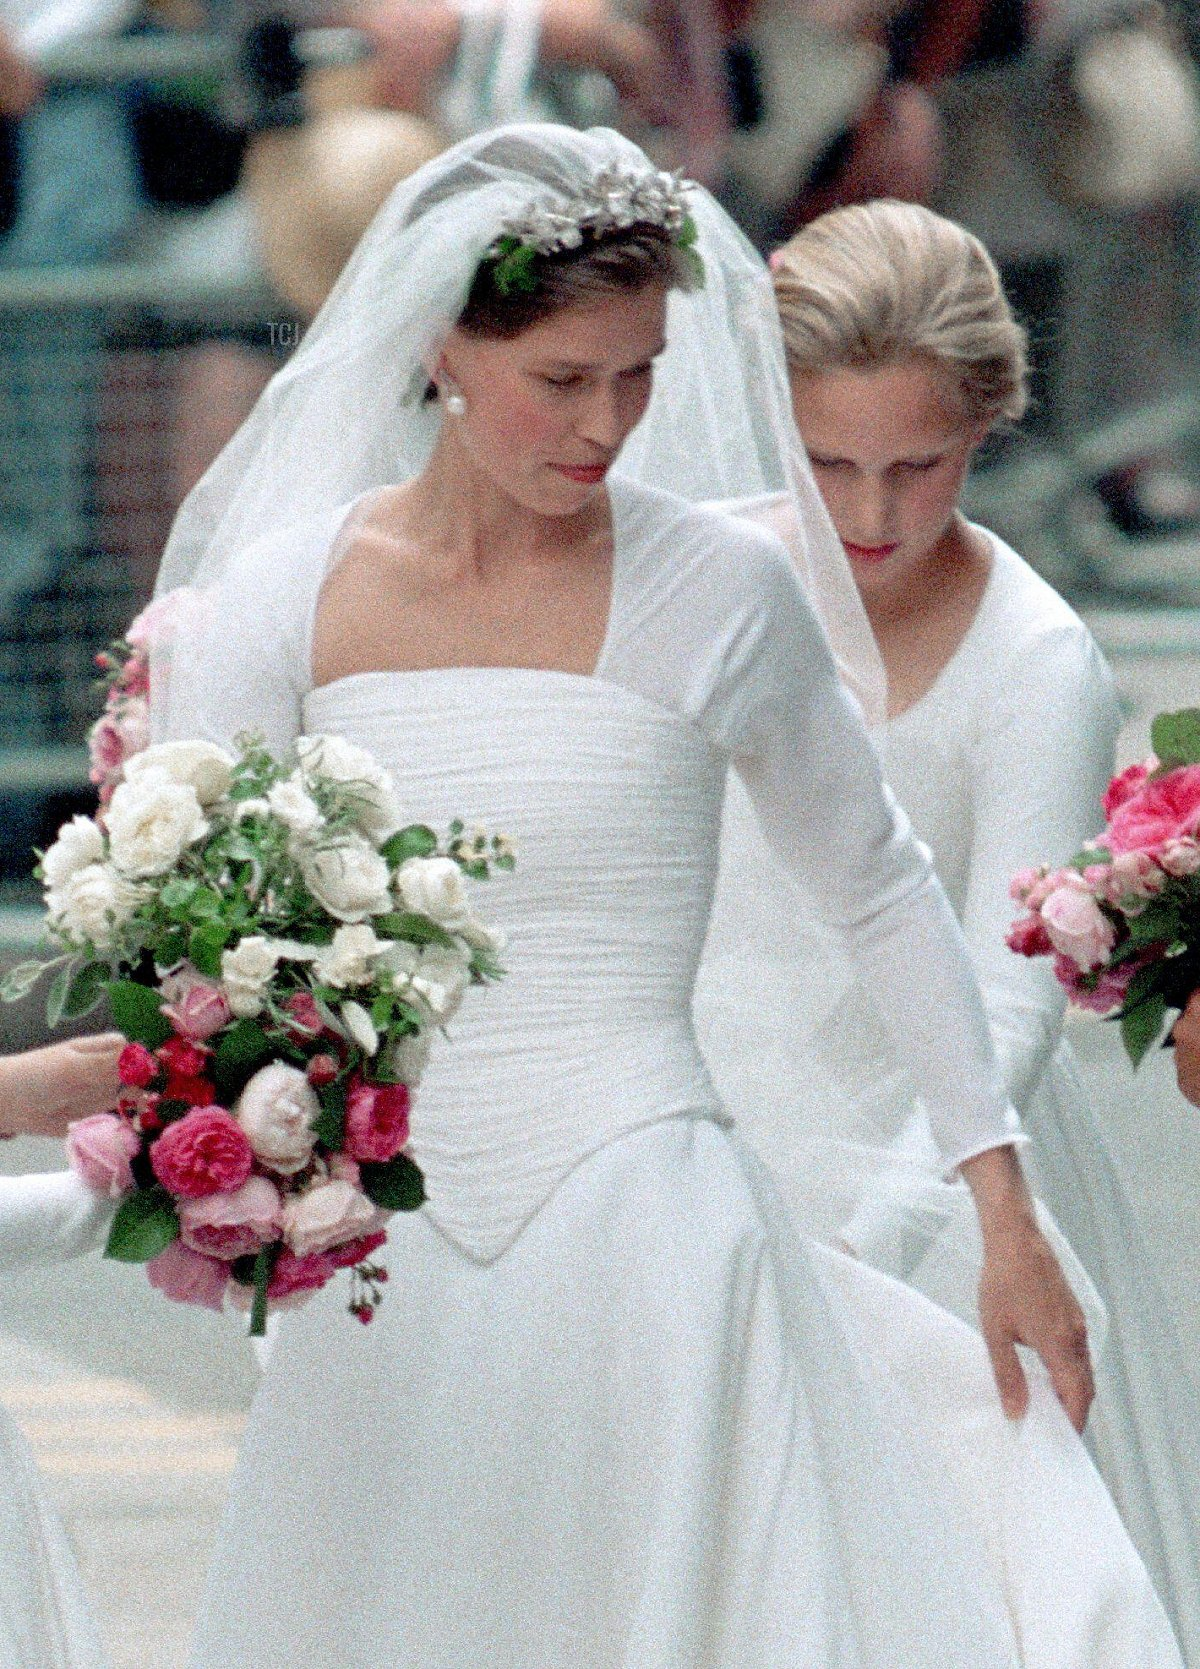 Lady Sarah Armstrong Jones arrives for her marriage to Daniel Chatto at St Stephen's Church, London, Britain